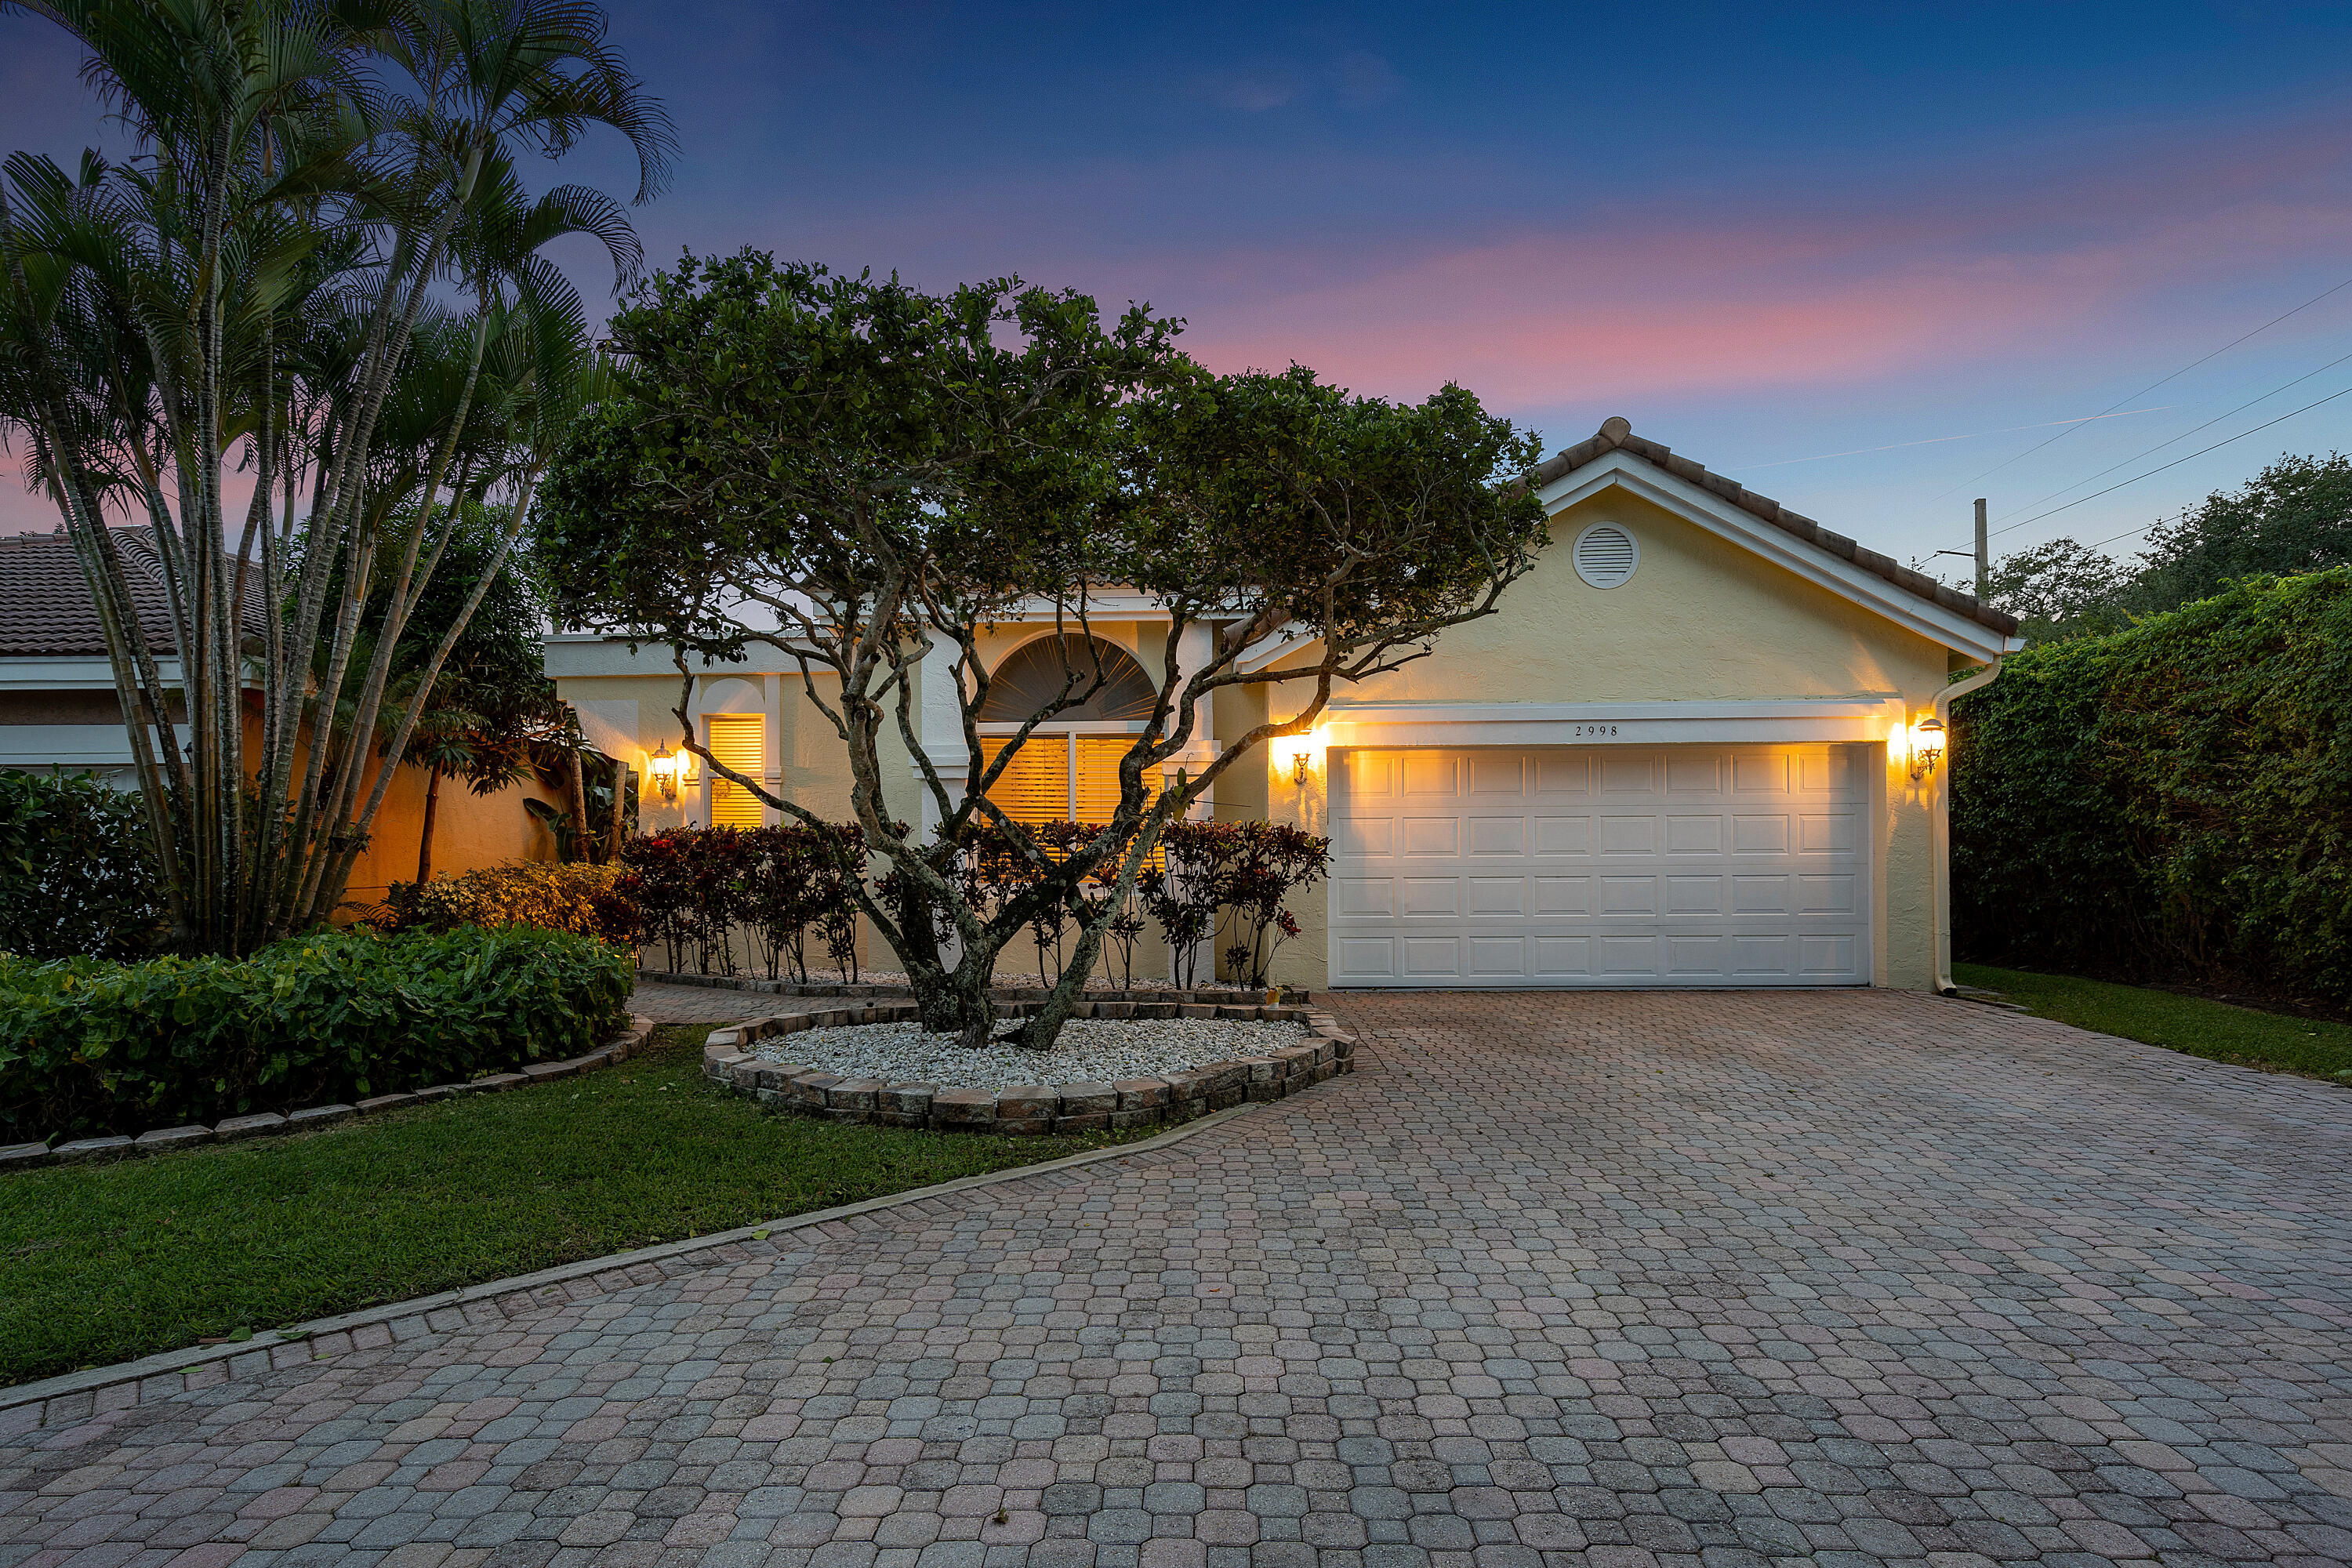 2998 NW 41st Street  For Sale 10746815, FL